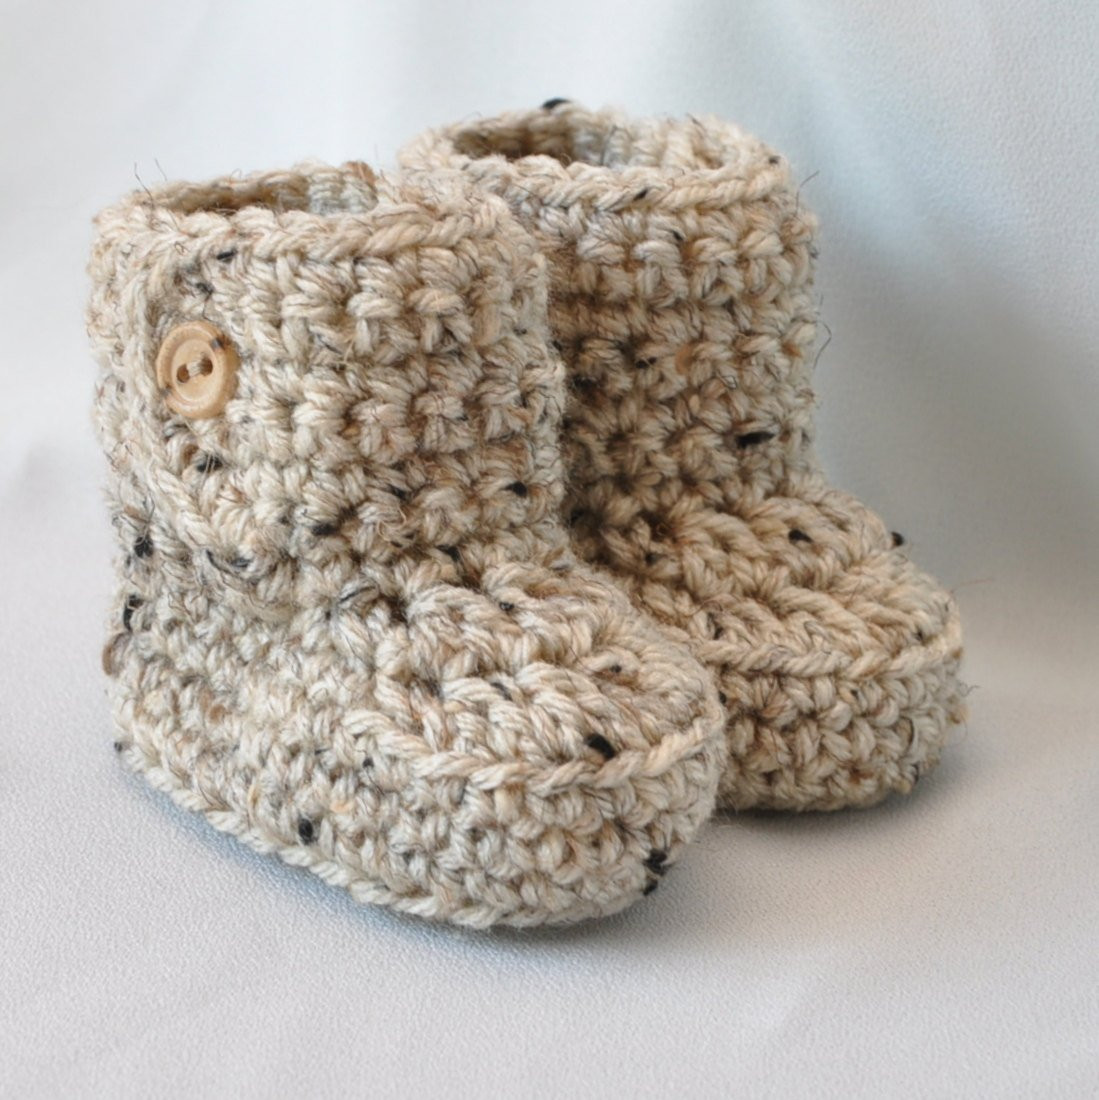 Crochet Baby Booties Awesome Baby Booties Crochet Baby Boots with button top Size 0 to 6 Of Crochet Baby Booties Fresh Crochet Baby Mary Jane Booties Free Patterns